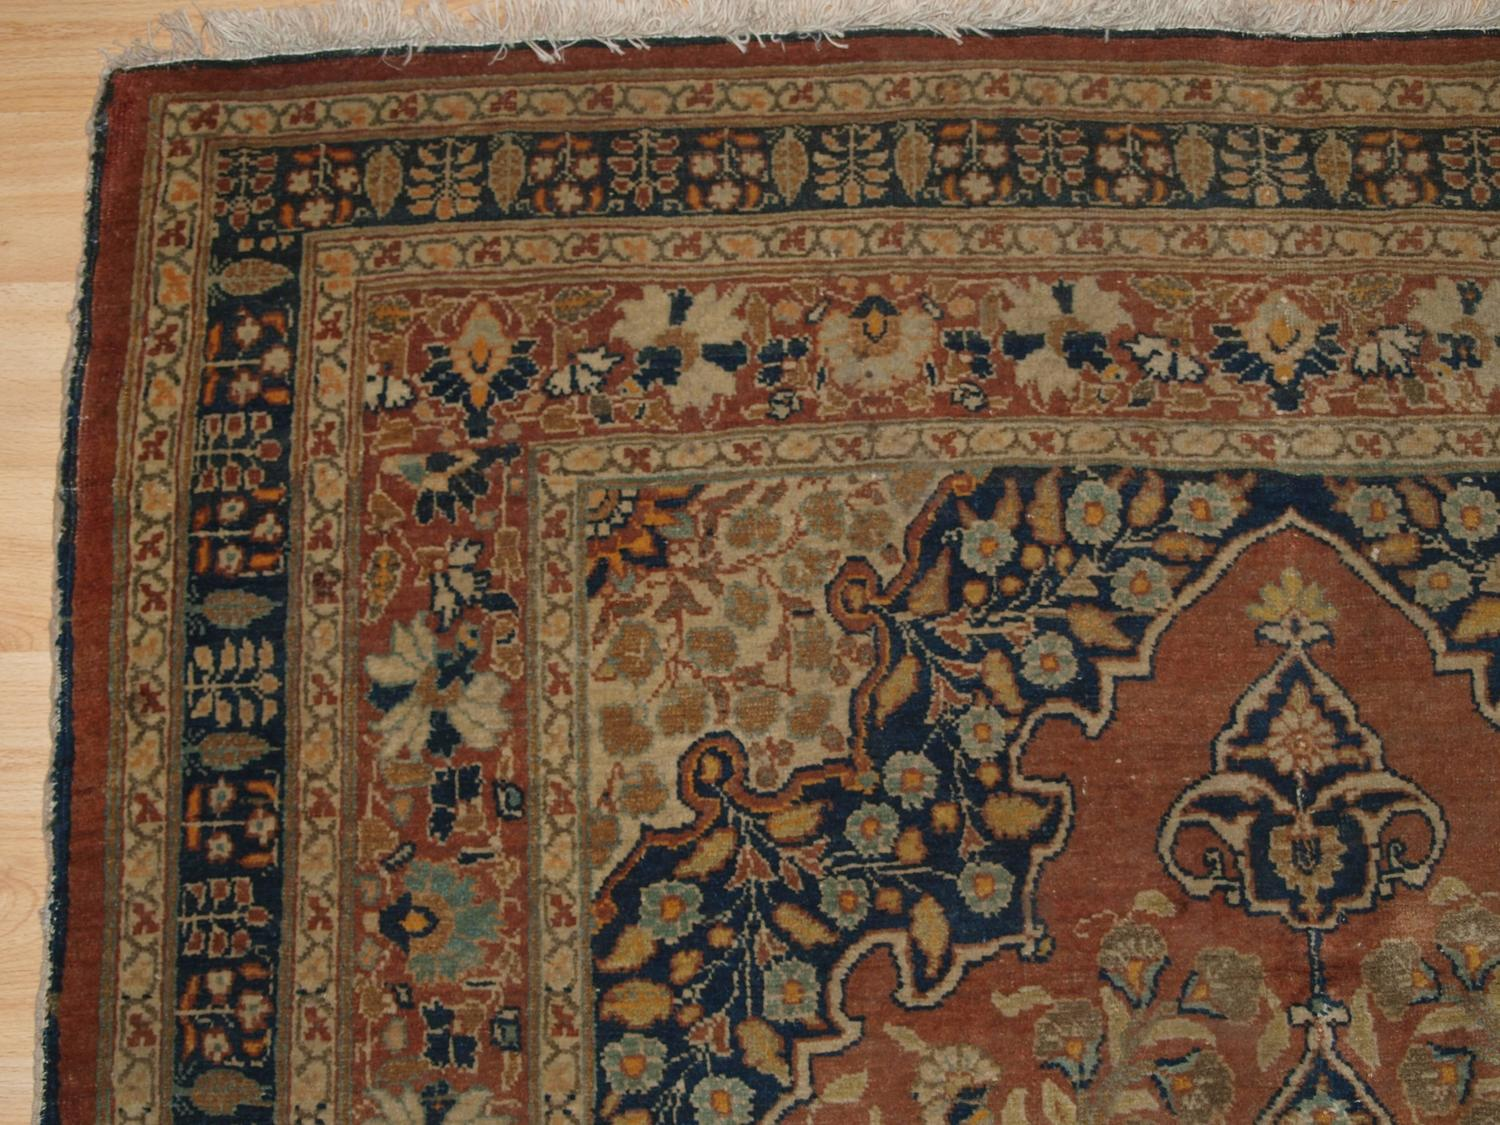 Antique Persian Tabriz Rug Of Classic Design Circa 1900 For Sale At 1stdibs